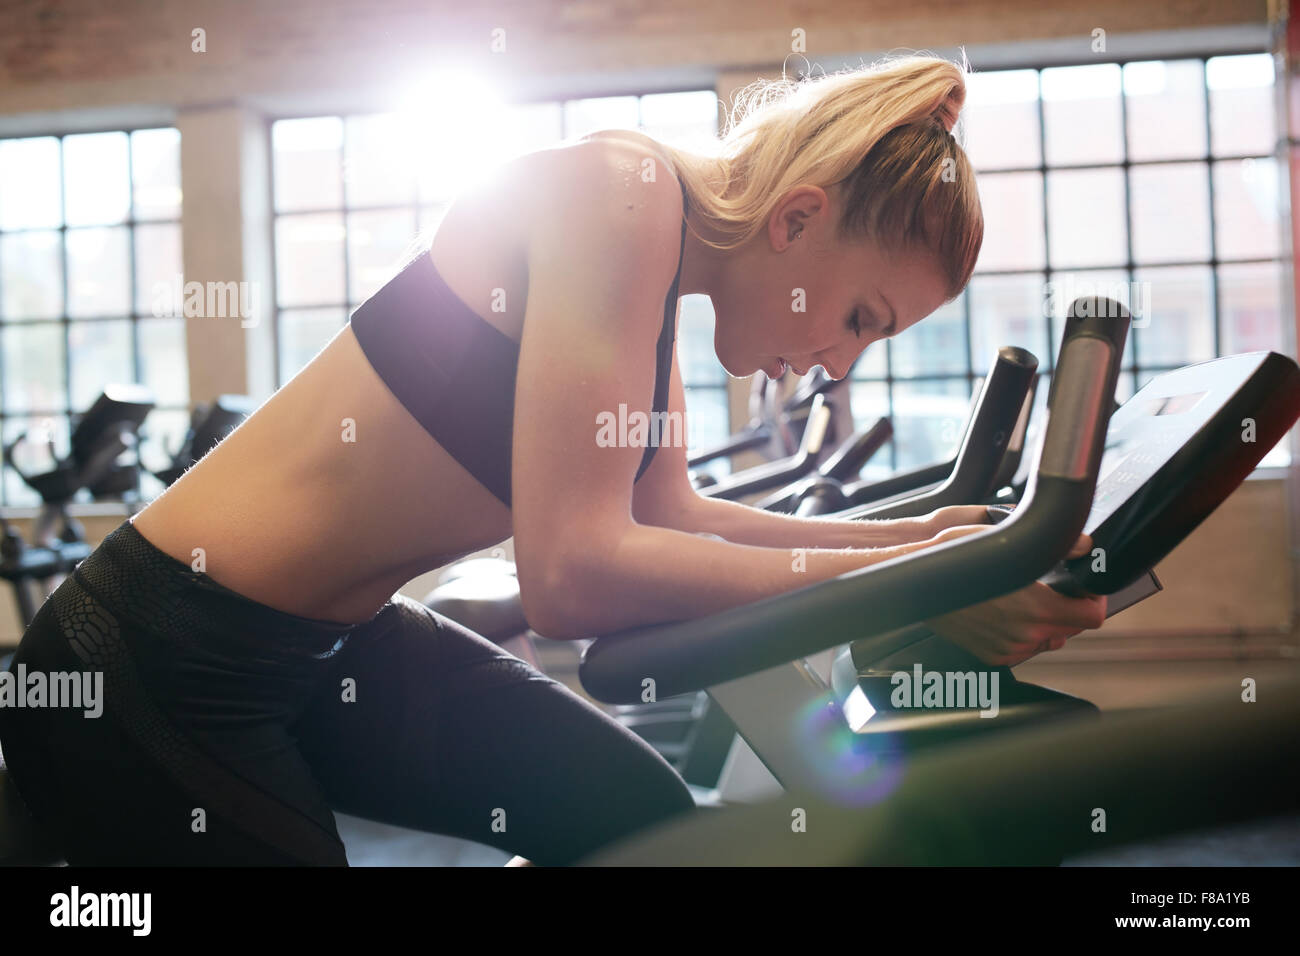 Woman taking break during cycling workout in gym. Female on gym bike doing cardio exercise. - Stock Image